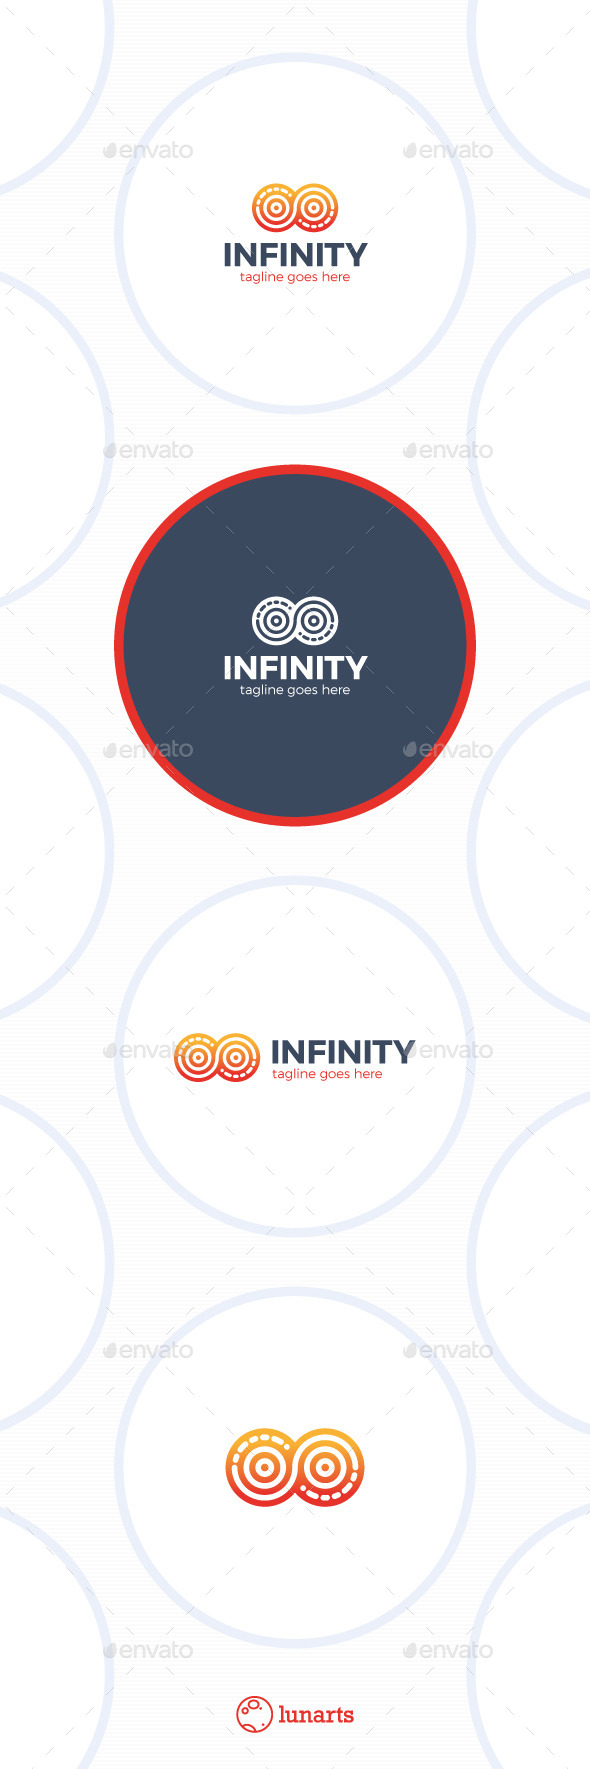 GraphicRiver Infinity Circle Logo 11844005